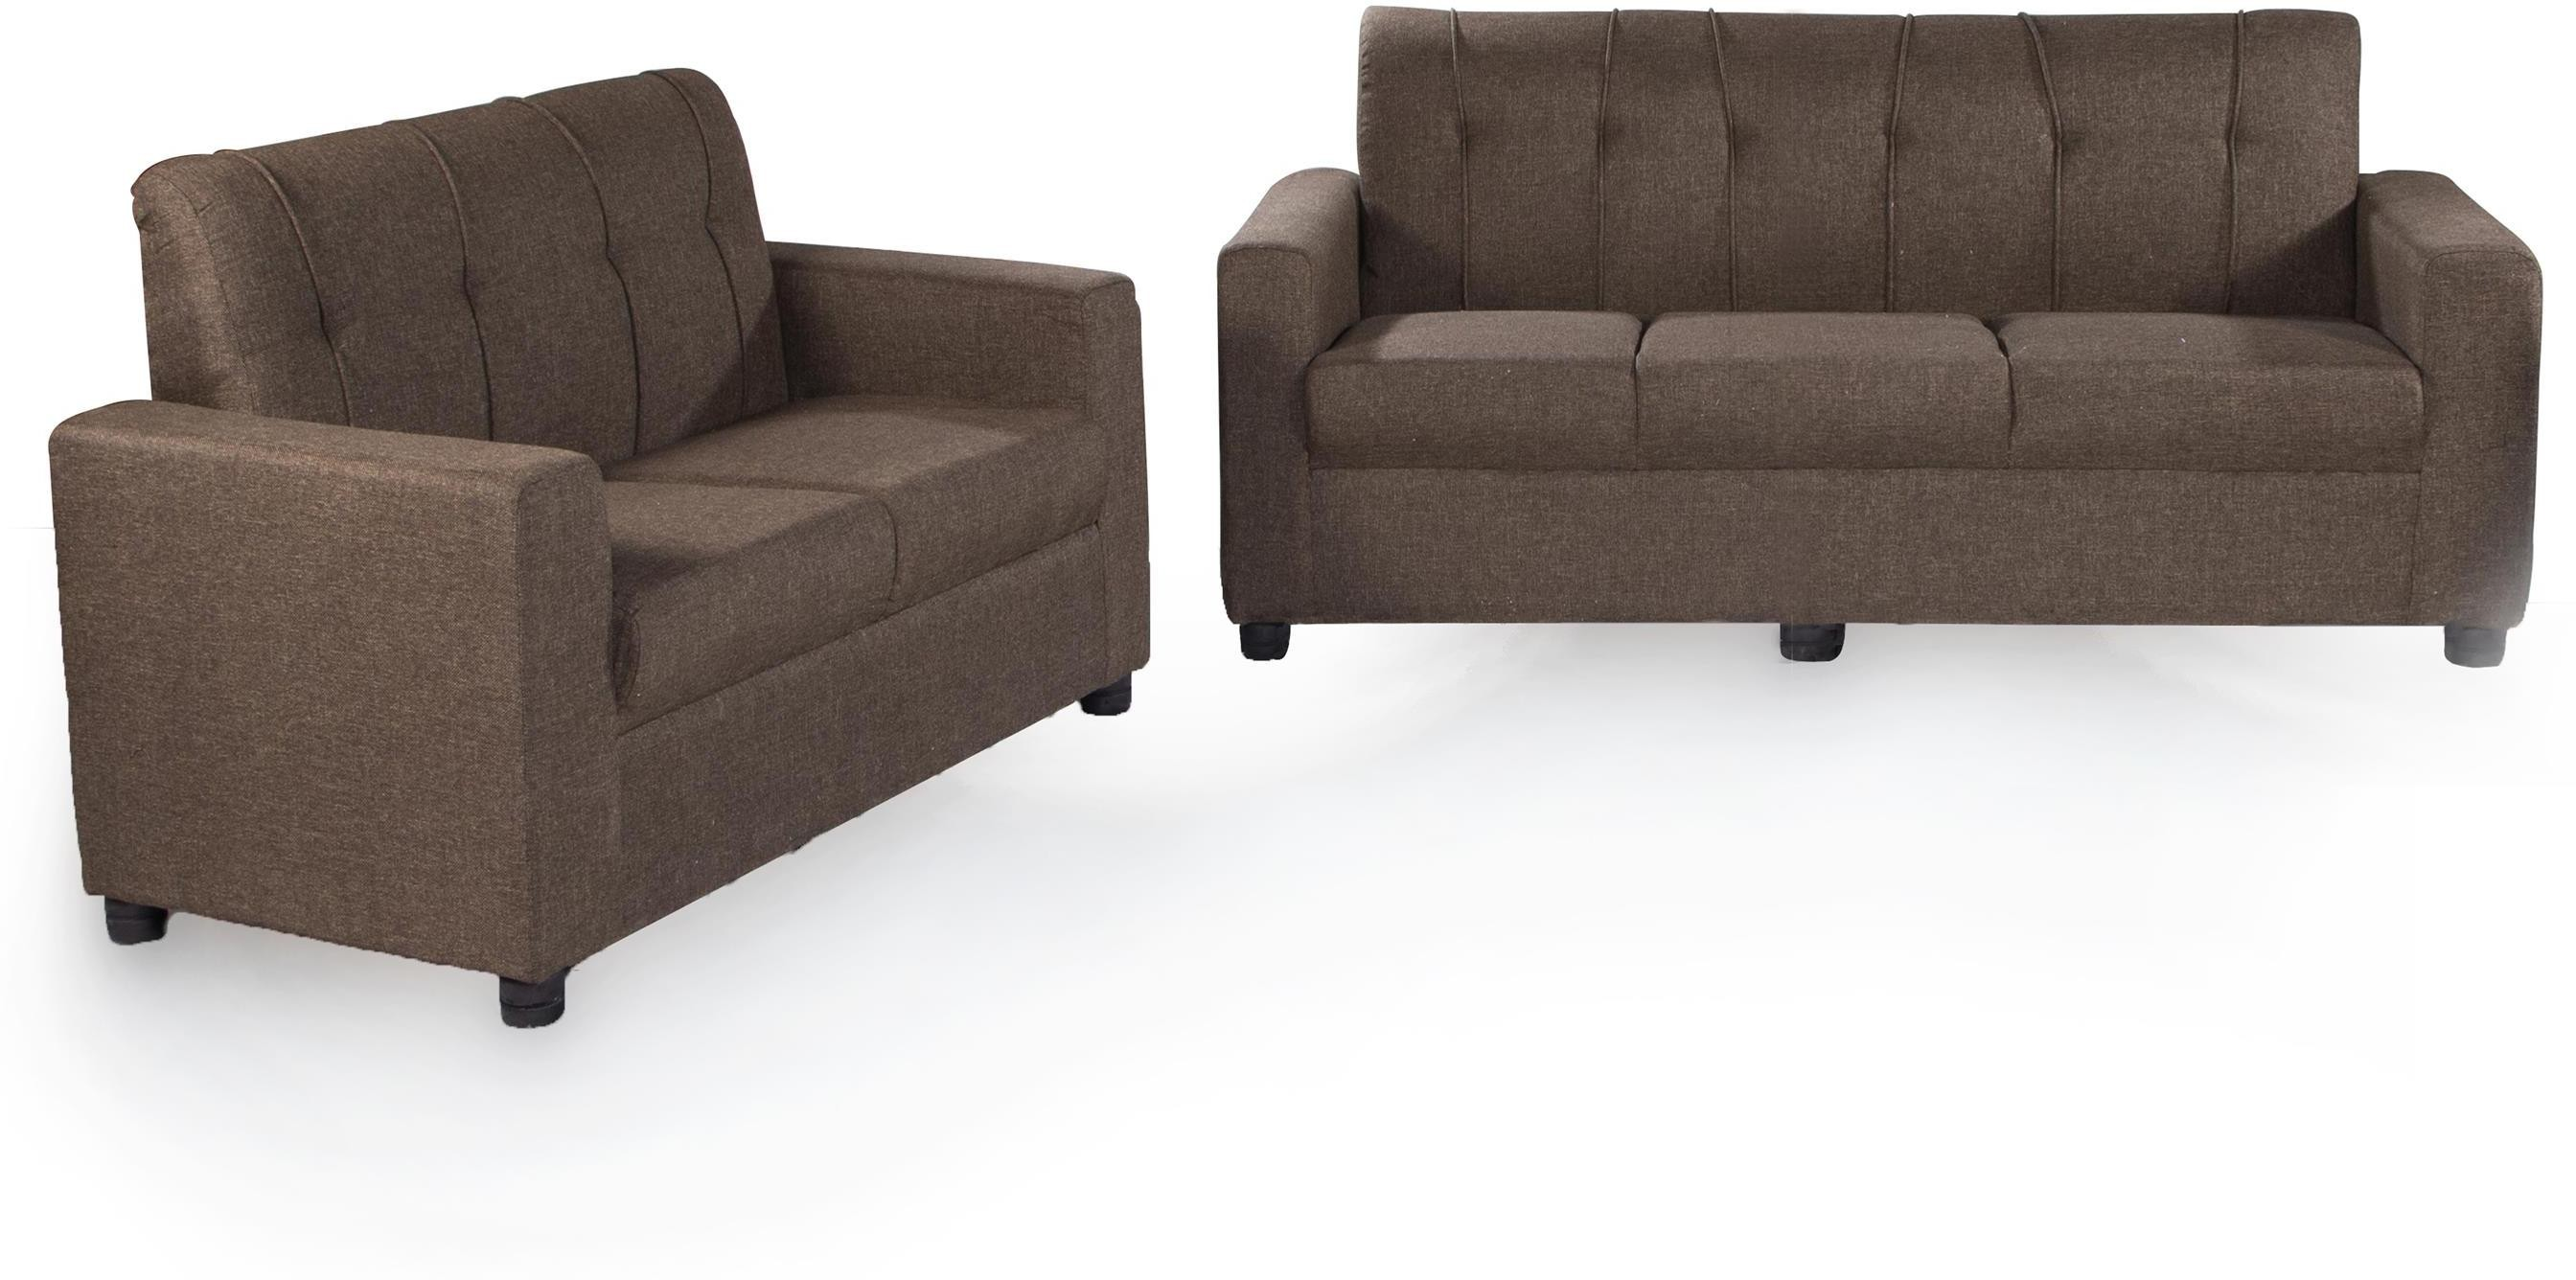 View Furnicity Fabric 3 + 2 Brown Sofa Set(Configuration - L-shaped) Furniture (Furnicity)